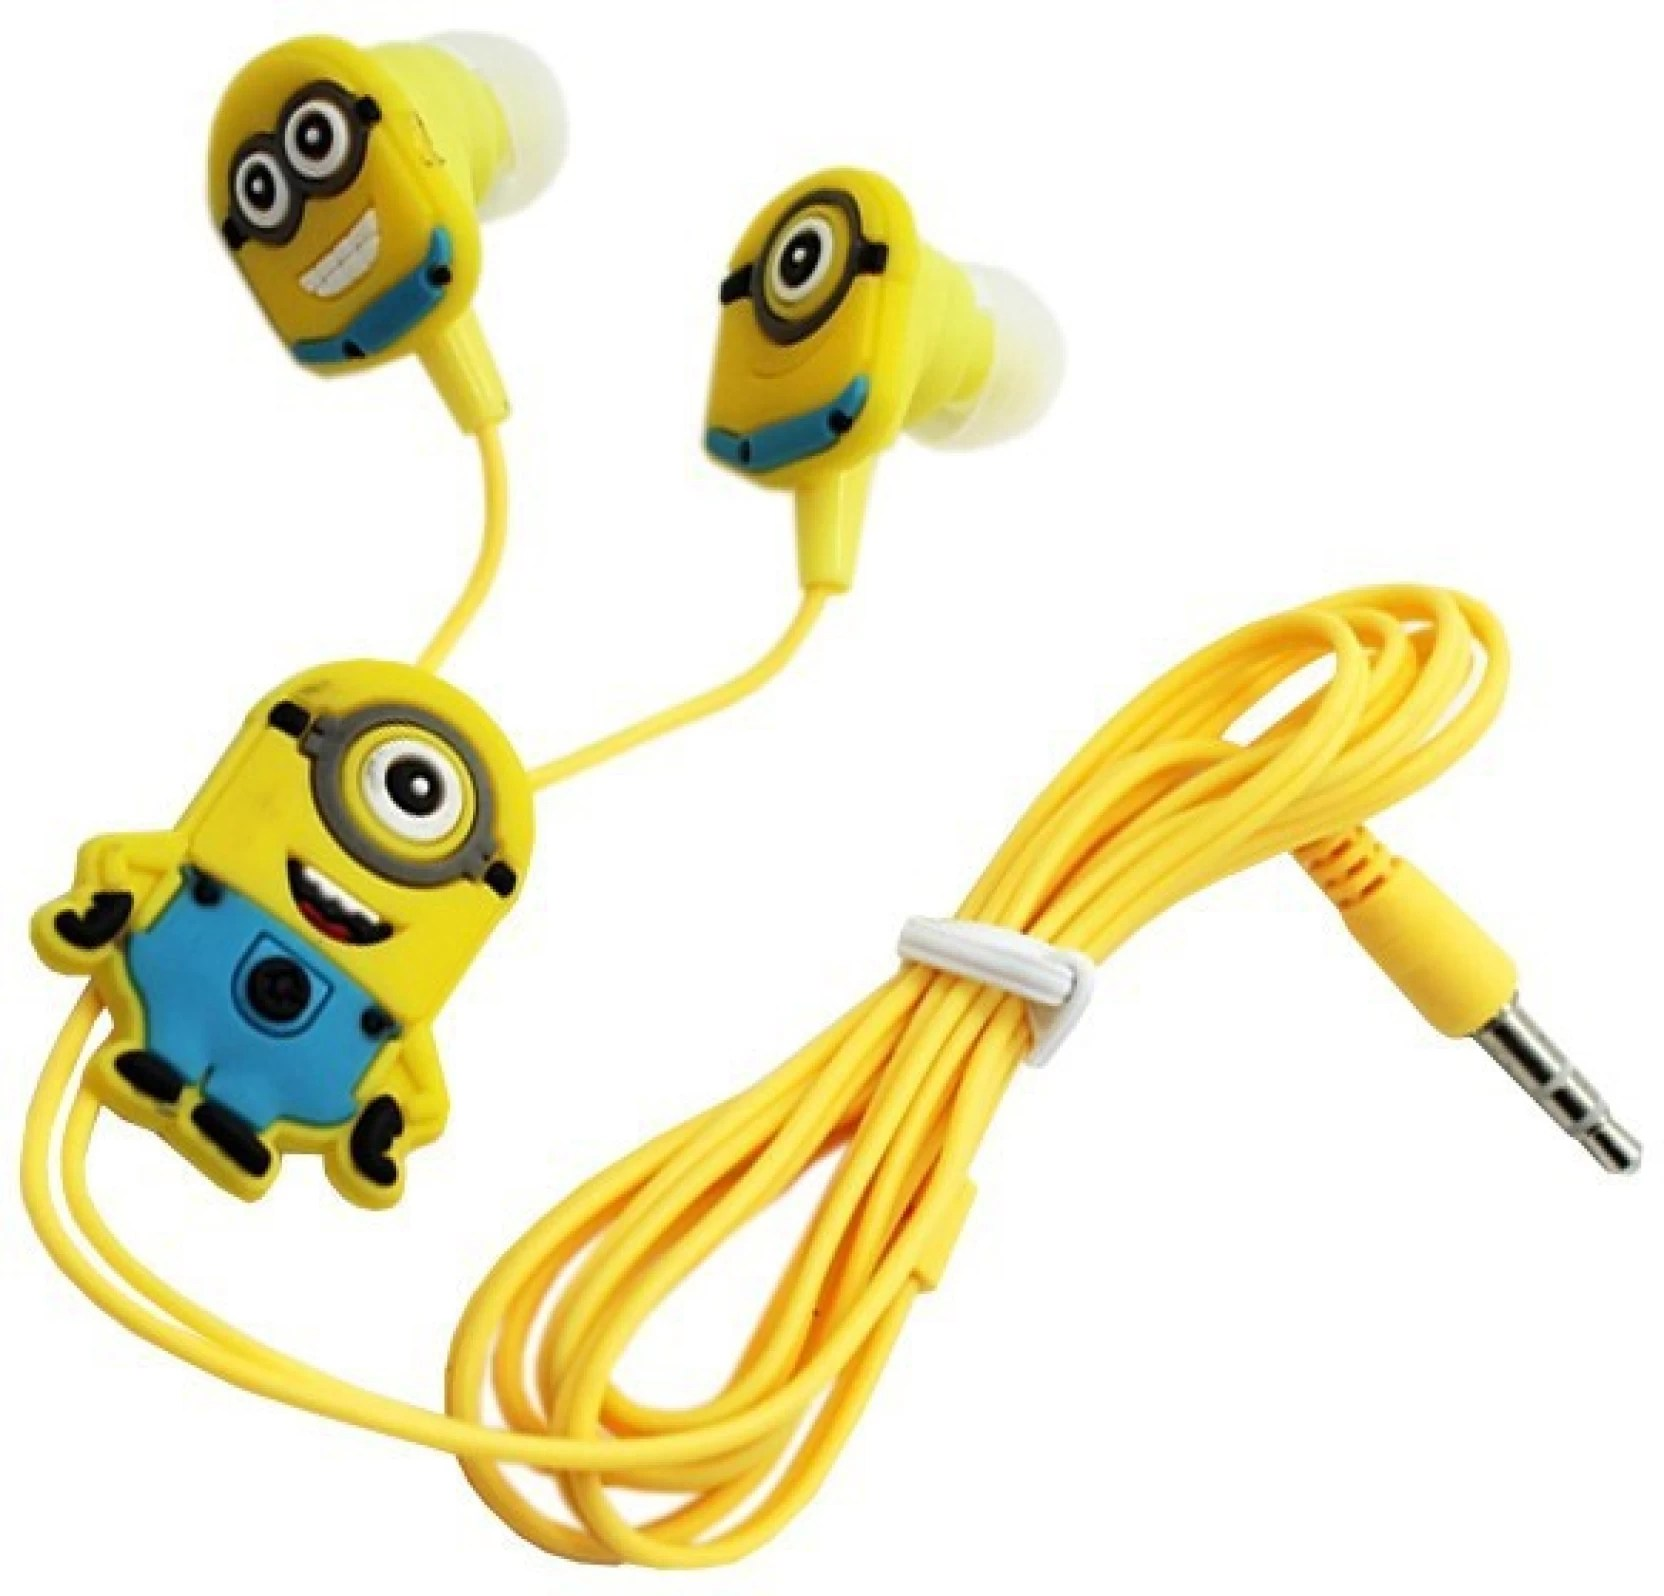 medium resolution of justchhapo minions cartoon in ear wired 3 5 mm earphone for mp3 mp4 mobile phone with earplug cover wired headset with mic yellow in the ear